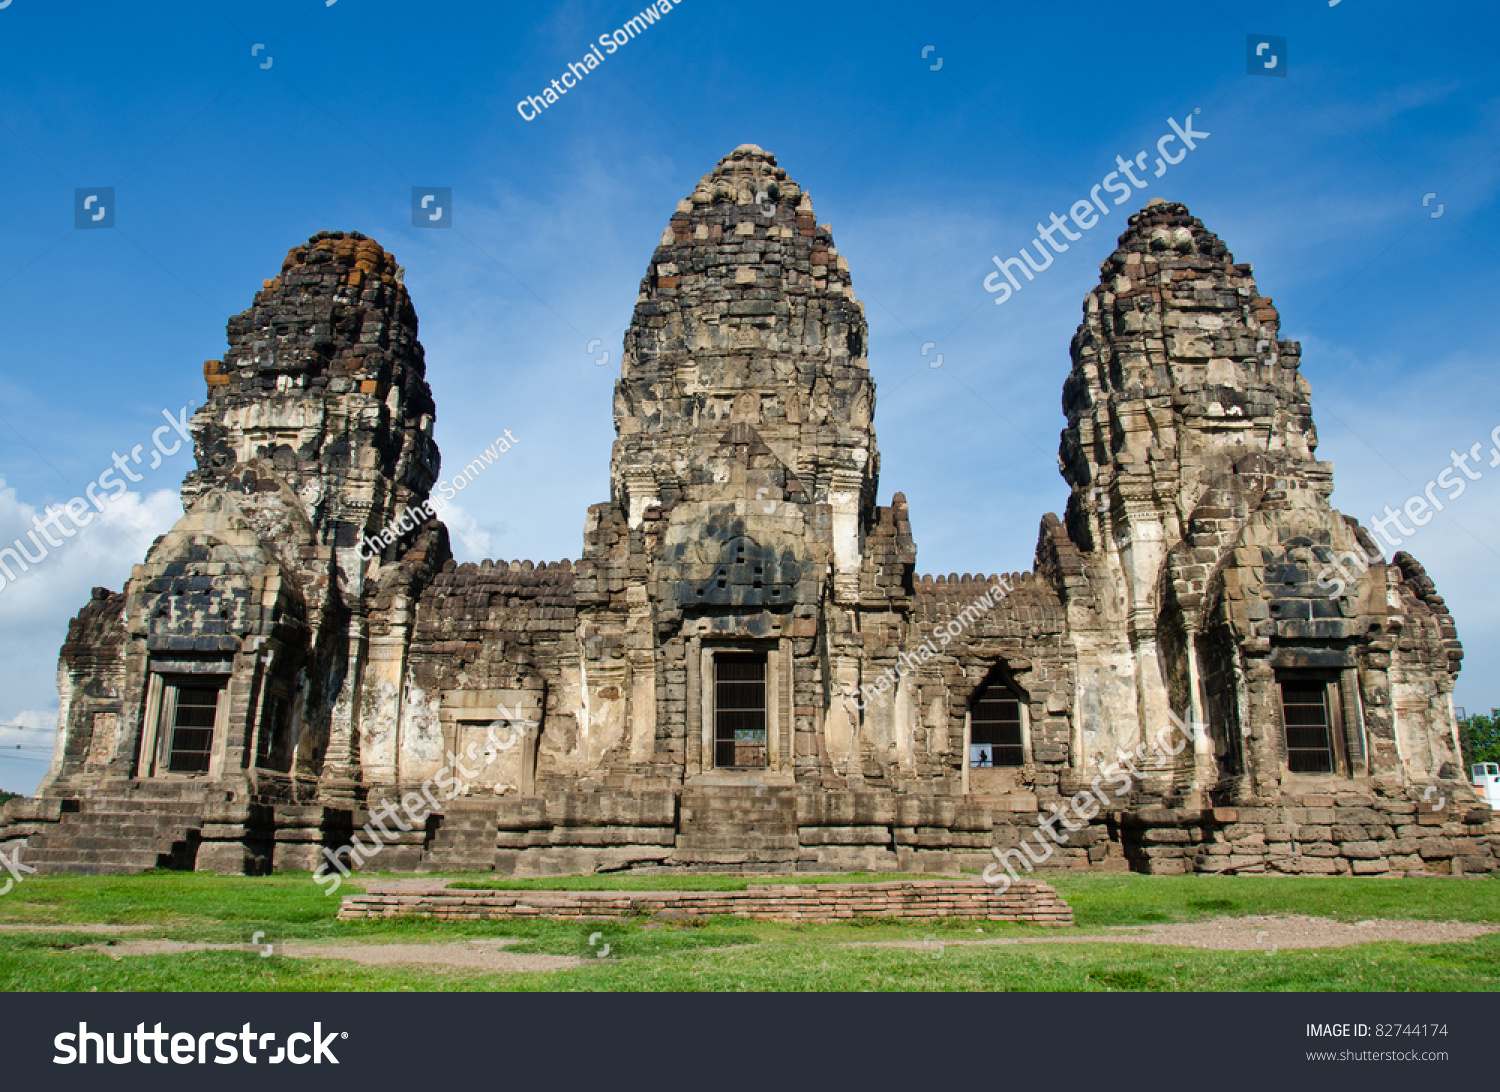 Phra Prang Sam Yod Lopburi Thailand Stock Photo 82744174 ...